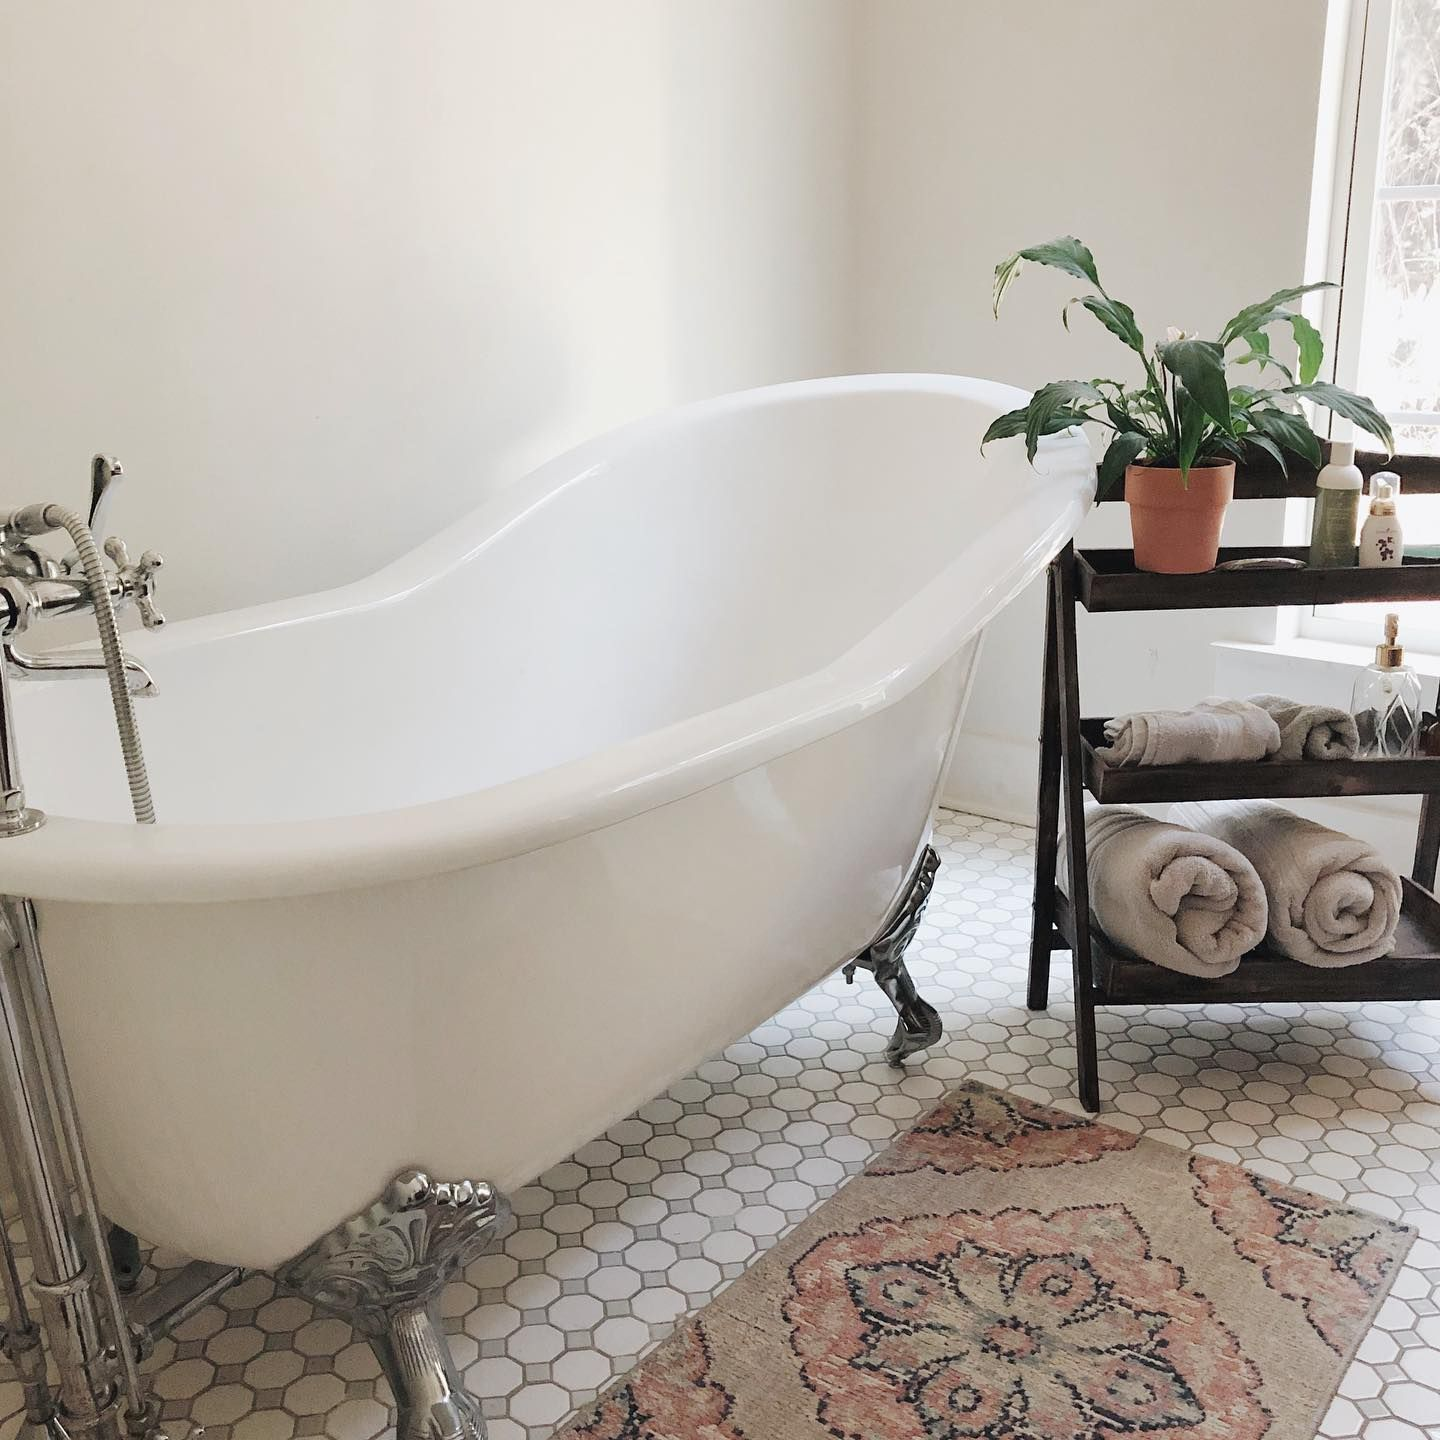 Adela 62 Inch Cast Iron Slipper Clawfoot Tub And Shower Package